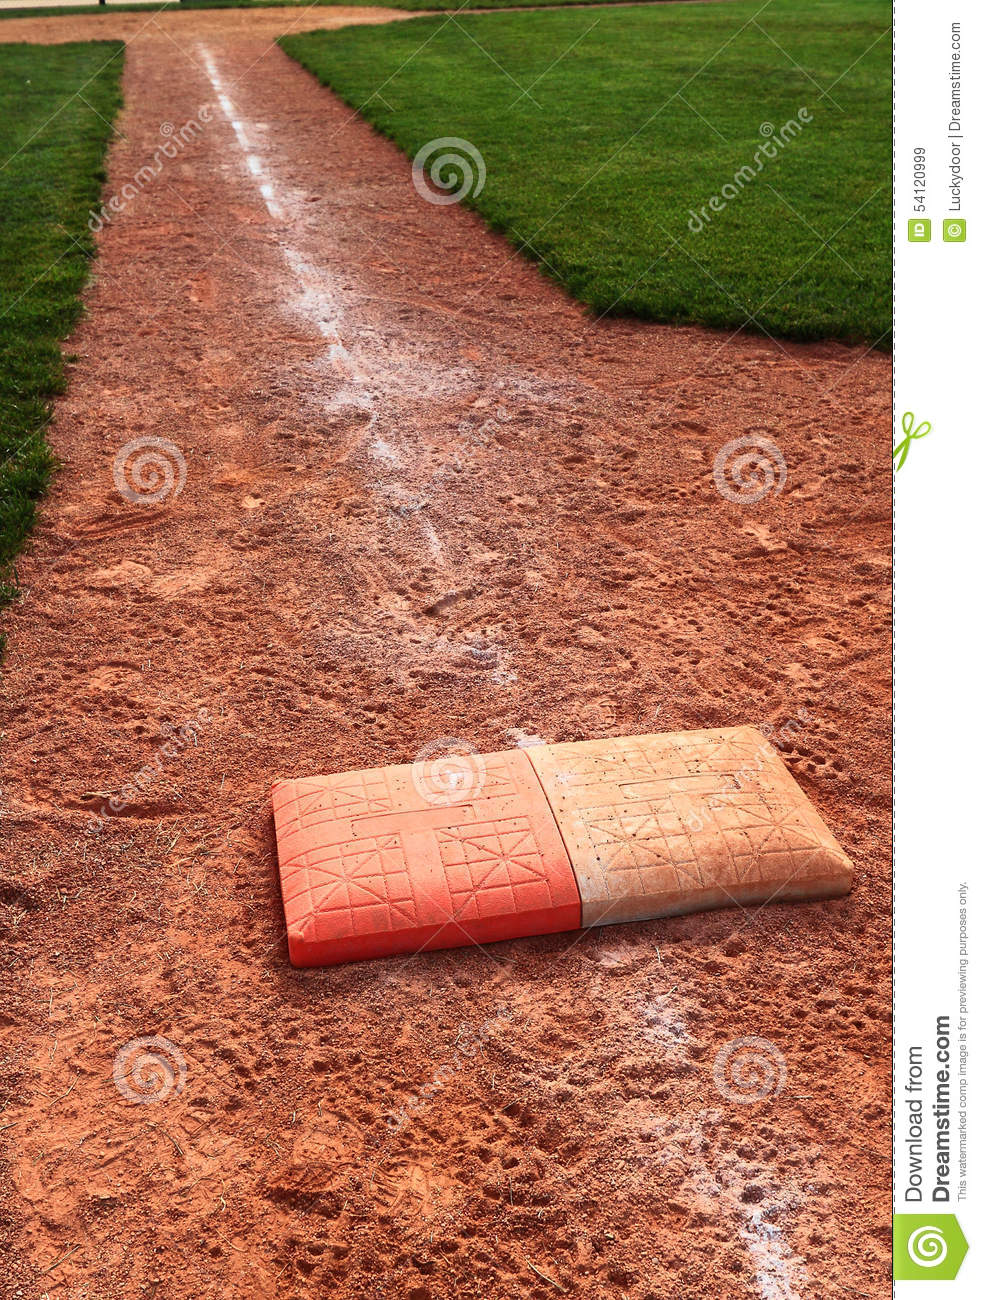 double first base chalk foul line stock photo image 54120999 double first base chalk foul line